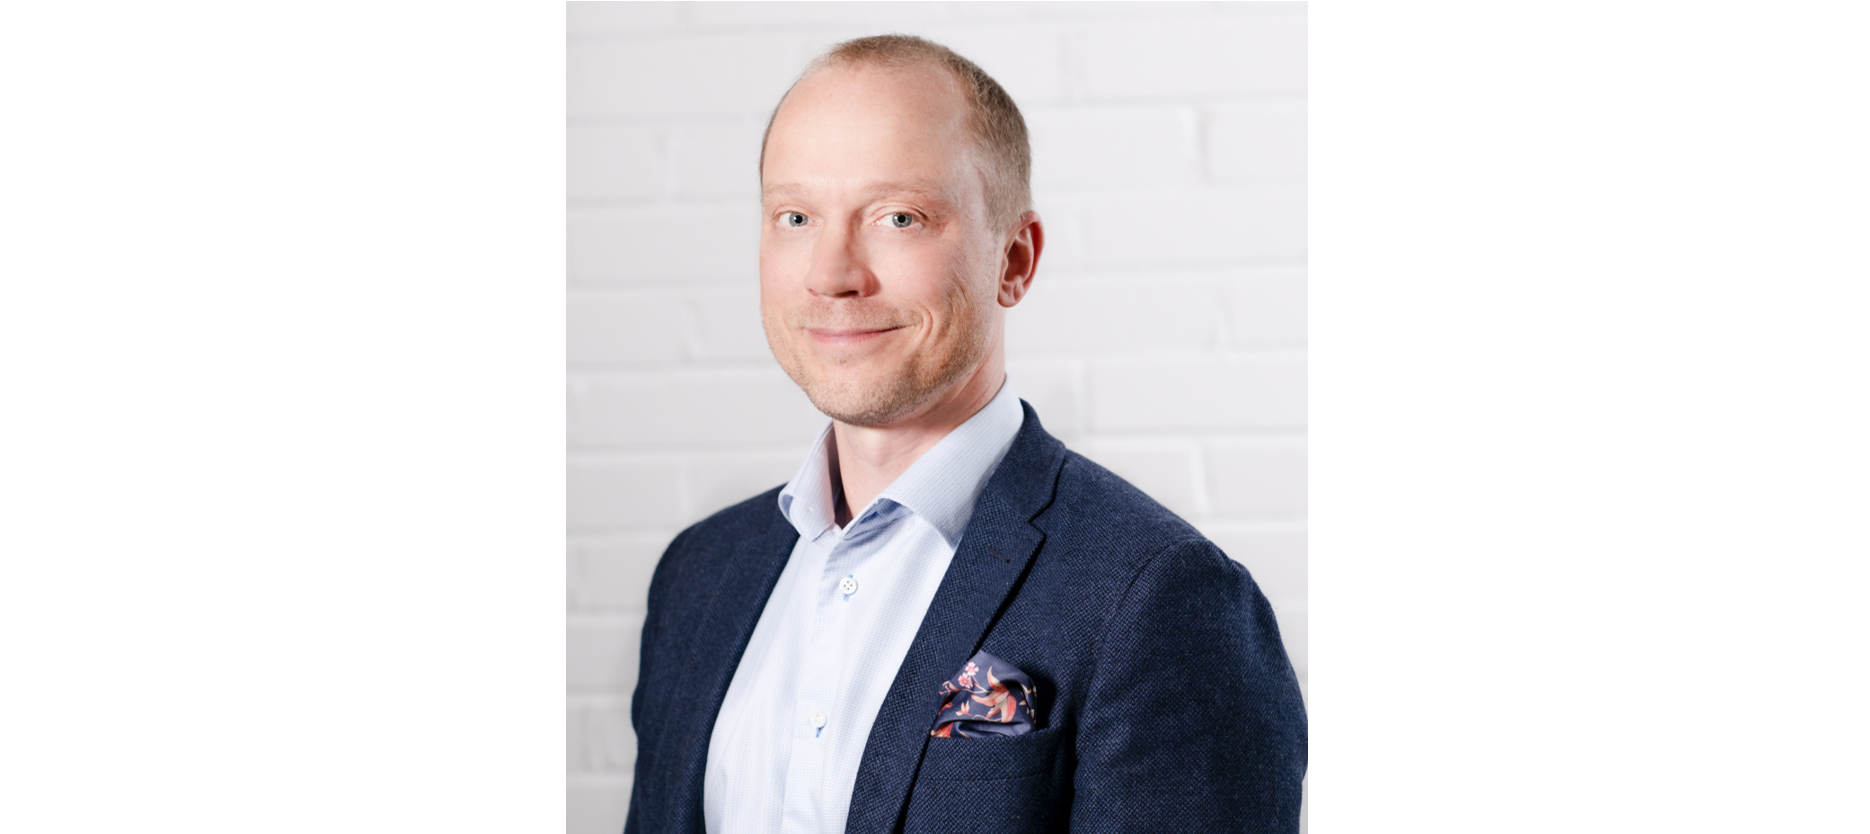 Relevant CEO Petri Kokkonen was appointed a chairman of IAB Finland's board of directors